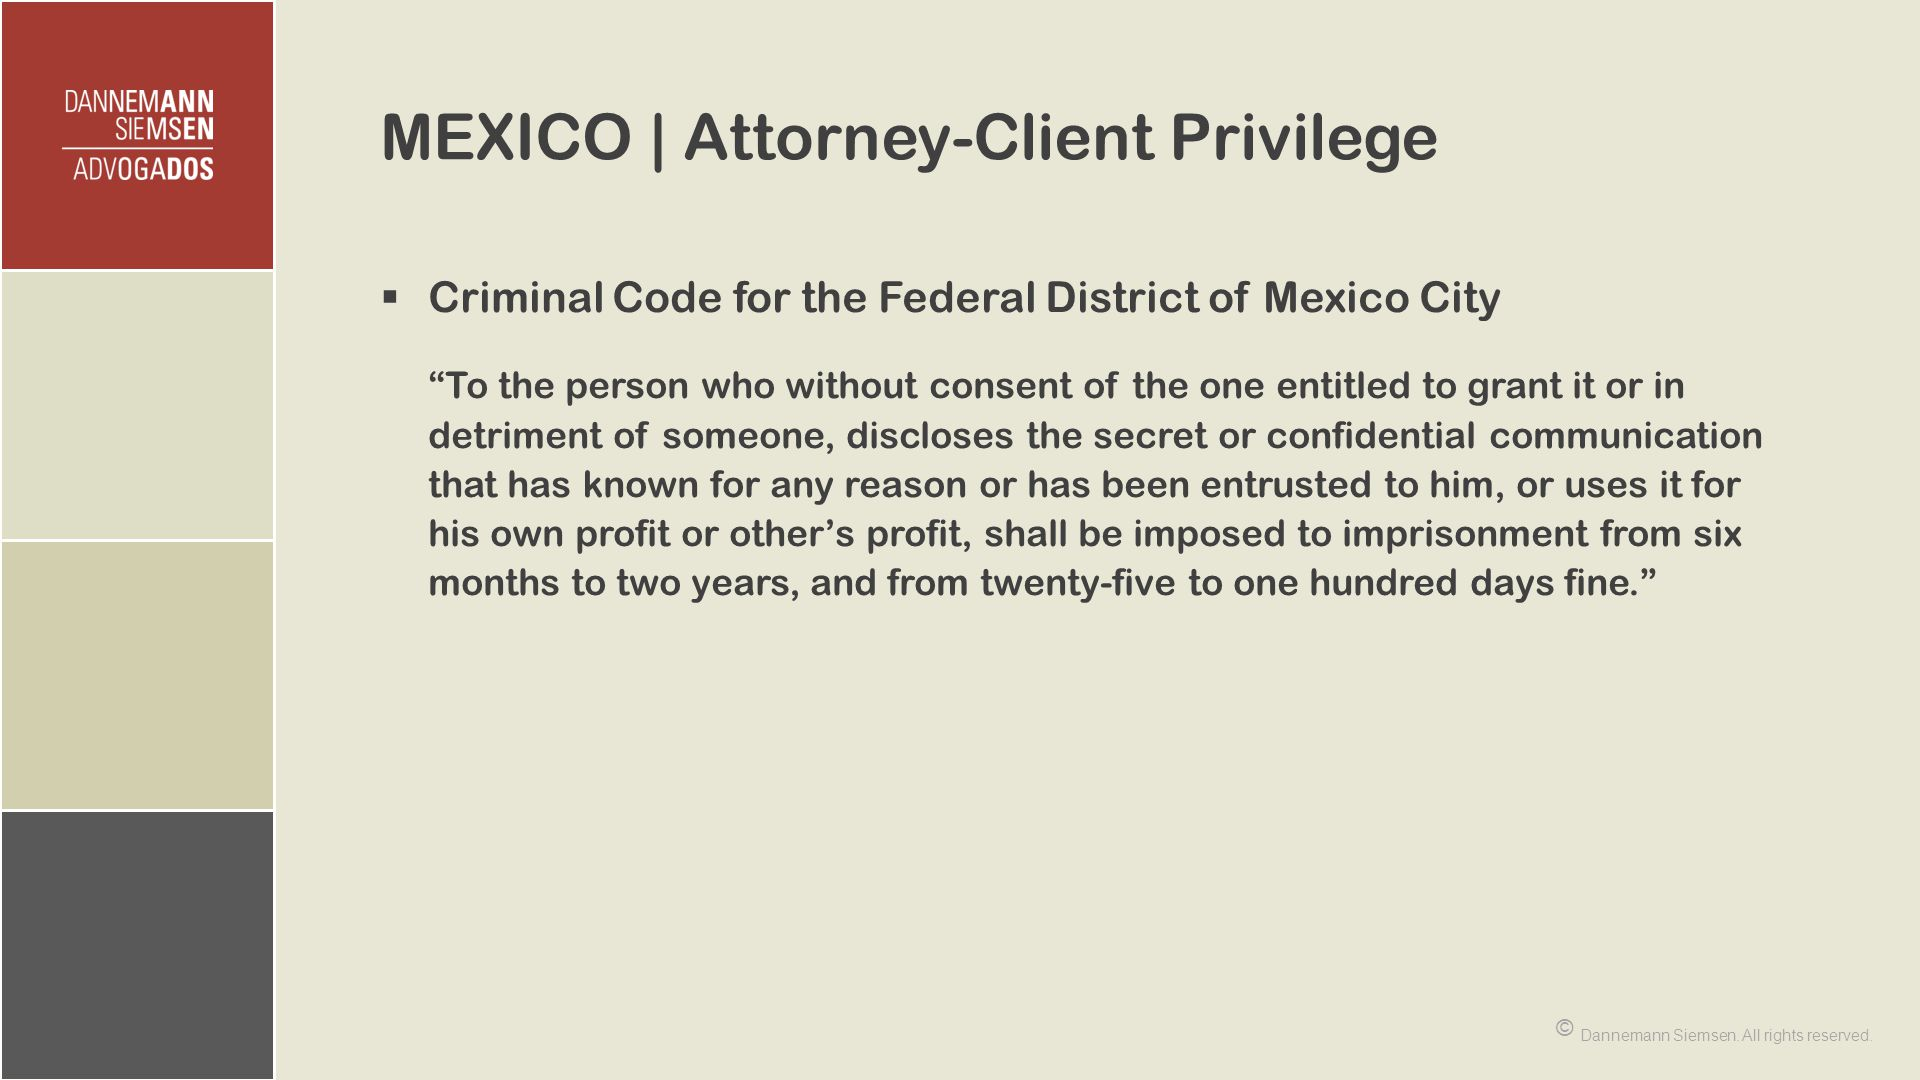 MEXICO | Attorney-Client Privilege  Criminal Code for the Federal District of Mexico City To the person who without consent of the one entitled to grant it or in detriment of someone, discloses the secret or confidential communication that has known for any reason or has been entrusted to him, or uses it for his own profit or other's profit, shall be imposed to imprisonment from six months to two years, and from twenty-five to one hundred days fine. © Dannemann Siemsen.